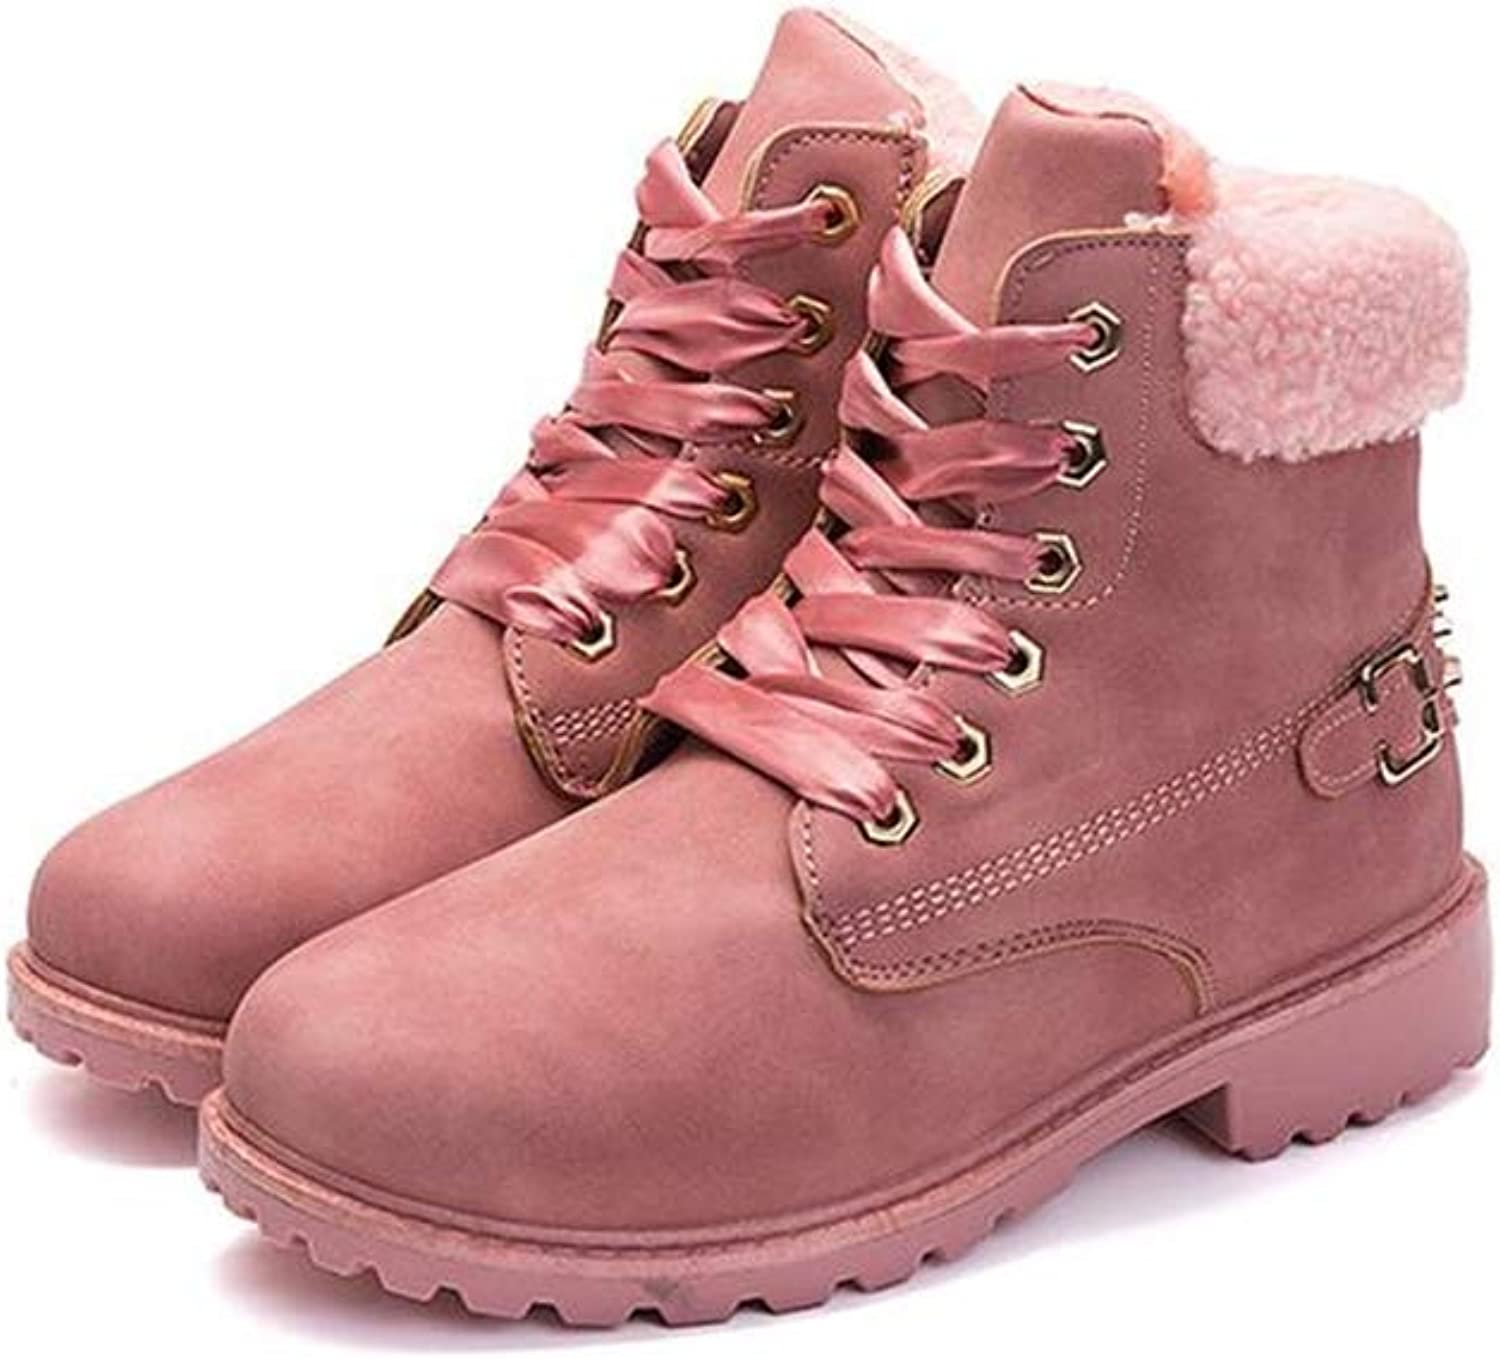 Smart.A 2018 Winter Women Fashion Martin Boots Lace up Flat Ankle Boots Combat Boots